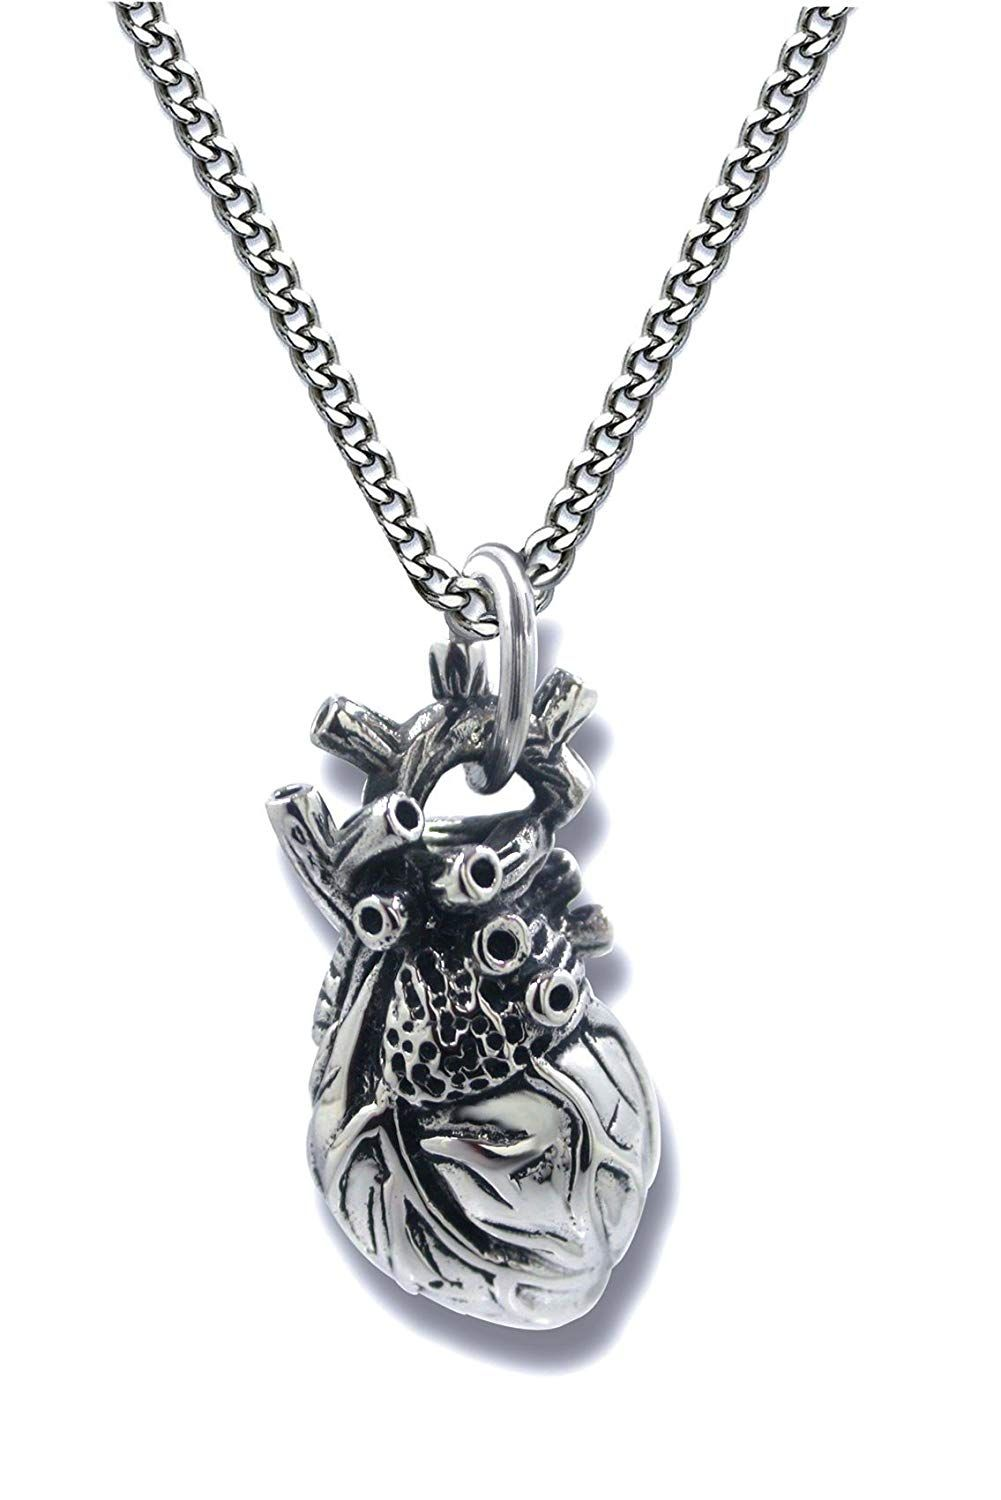 17415a8689b Pearlina Anatomical Heart Necklace Man or Woman 3D Pendant Oxidized  Antique-Finish Stainless Steel